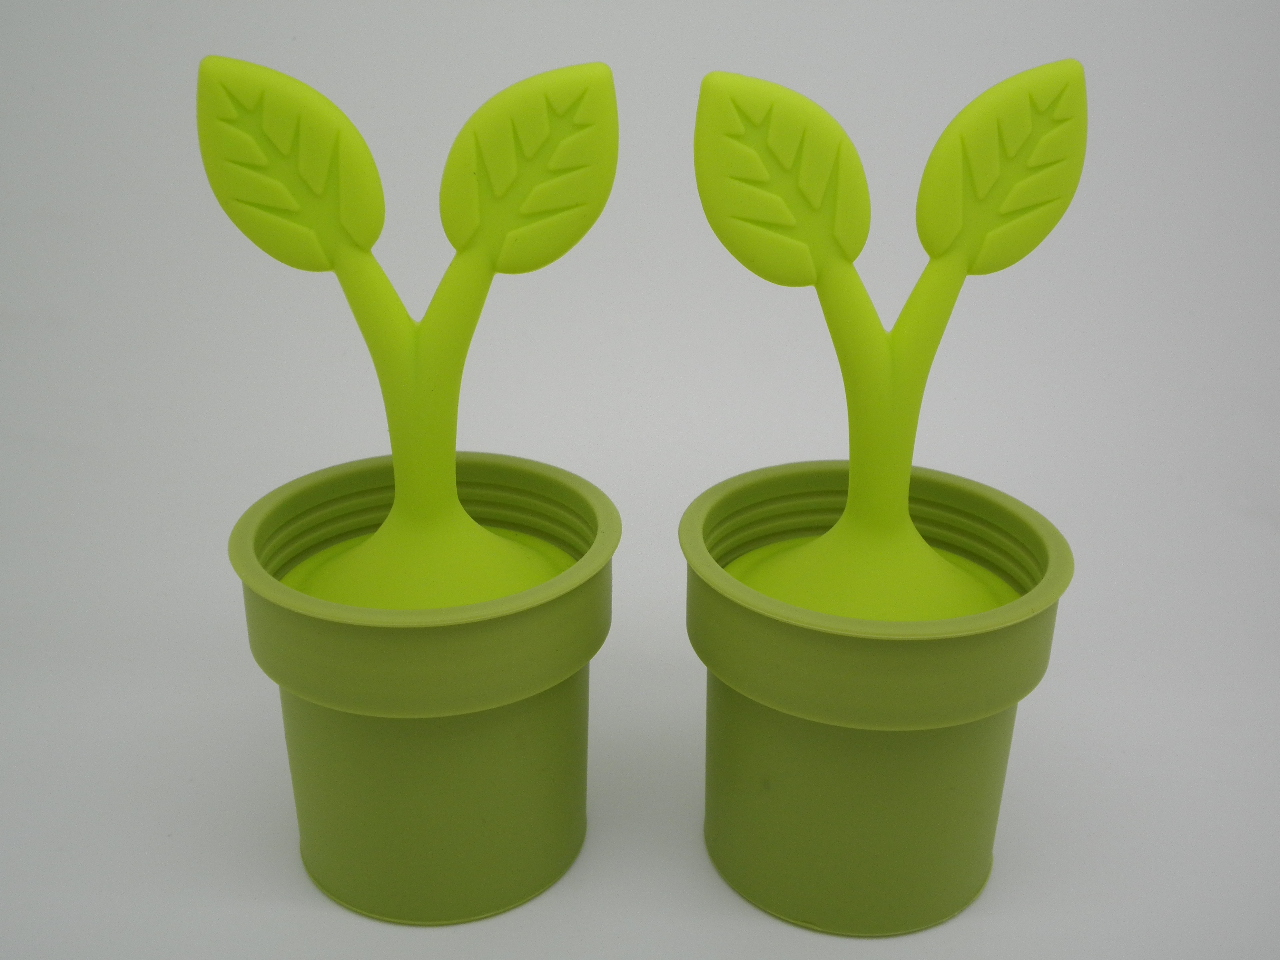 http://www.refinehksilicone.cn/data/images/product/20180417101011_805.JPG